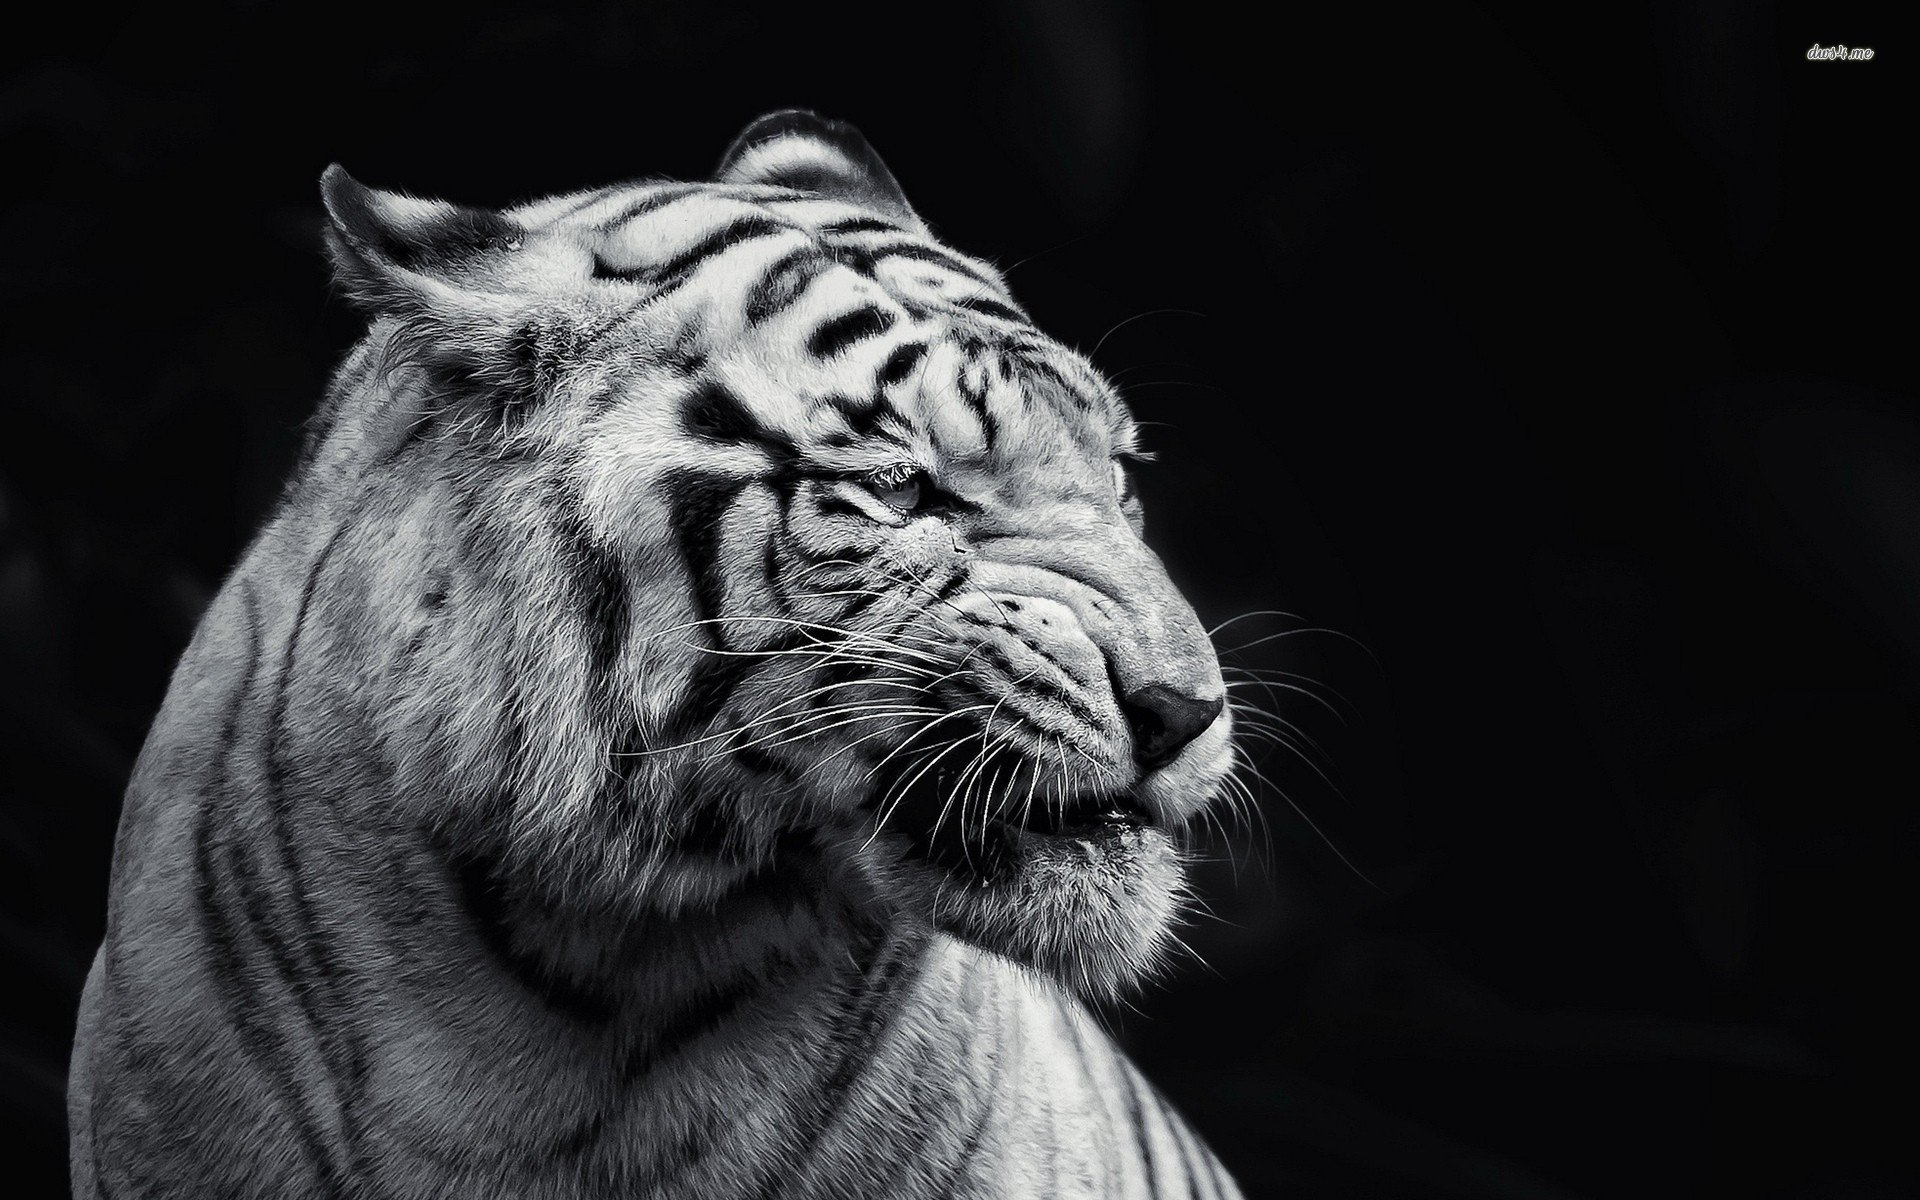 animal-wallpaper-black-and-white-innovative-with-photos-of-animal-wallpaper-wallpaper-on-gallery